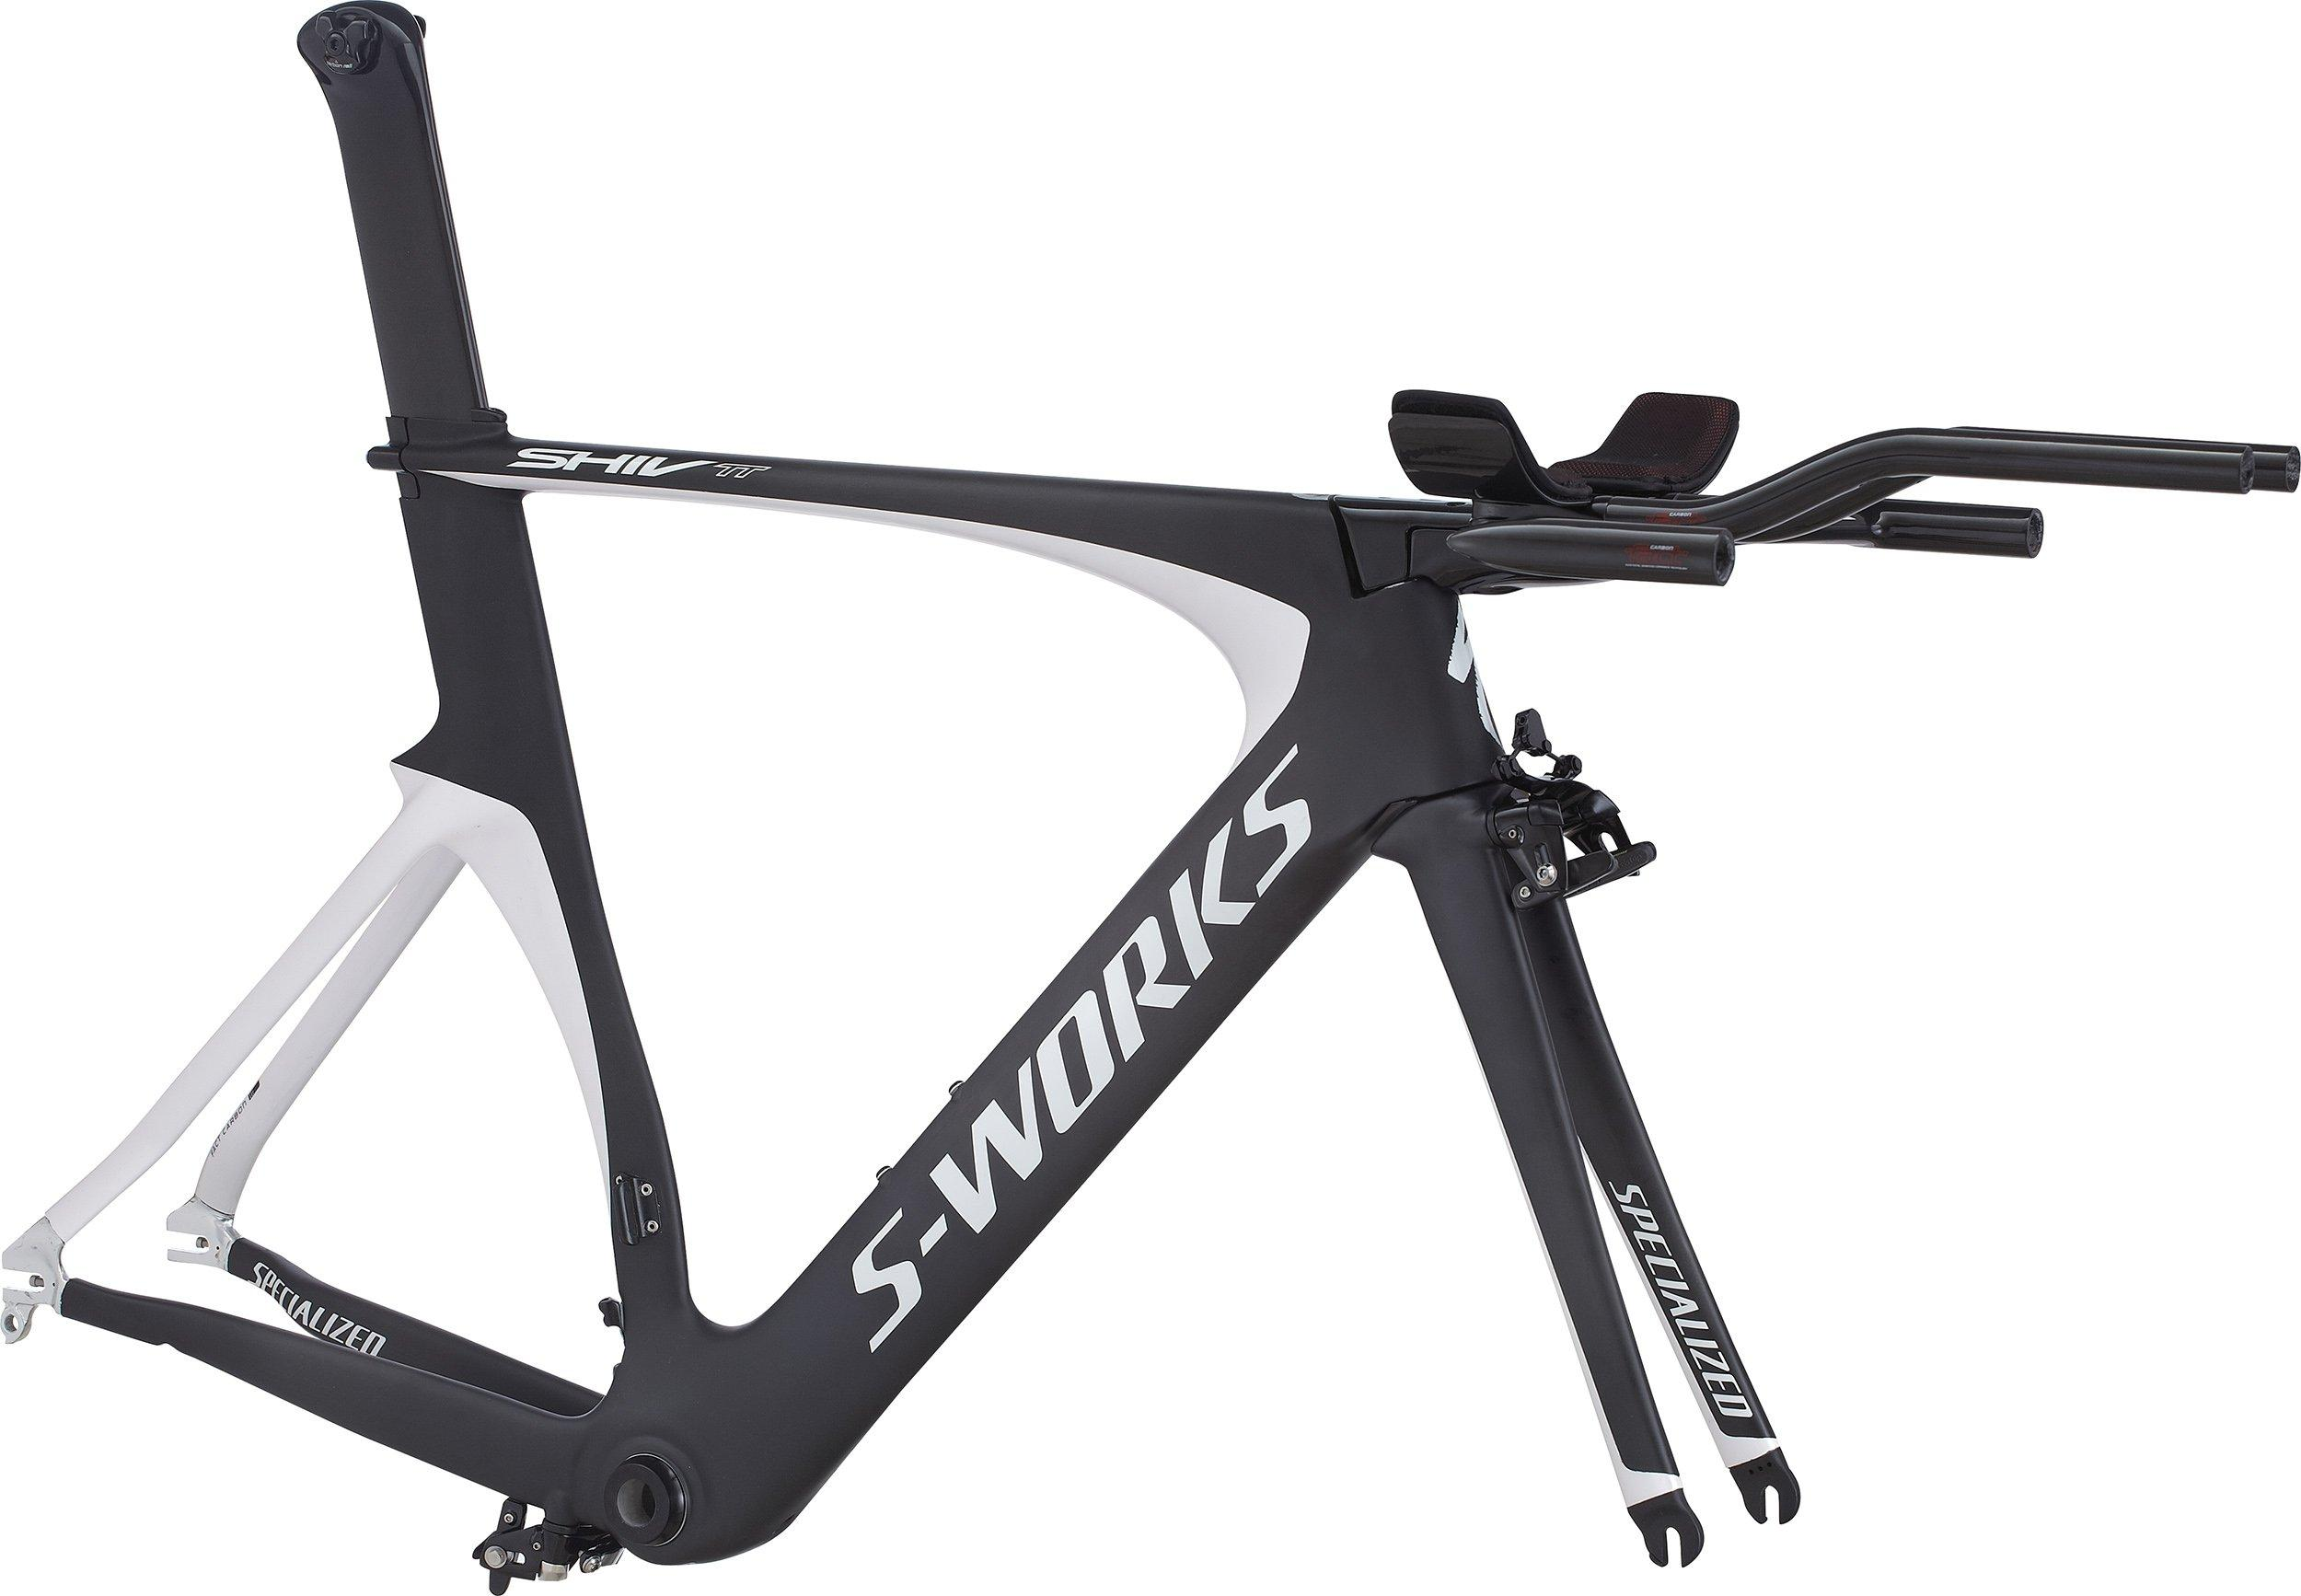 Specialized S-Works Shiv TT Module in Carbon/White £3,740.00